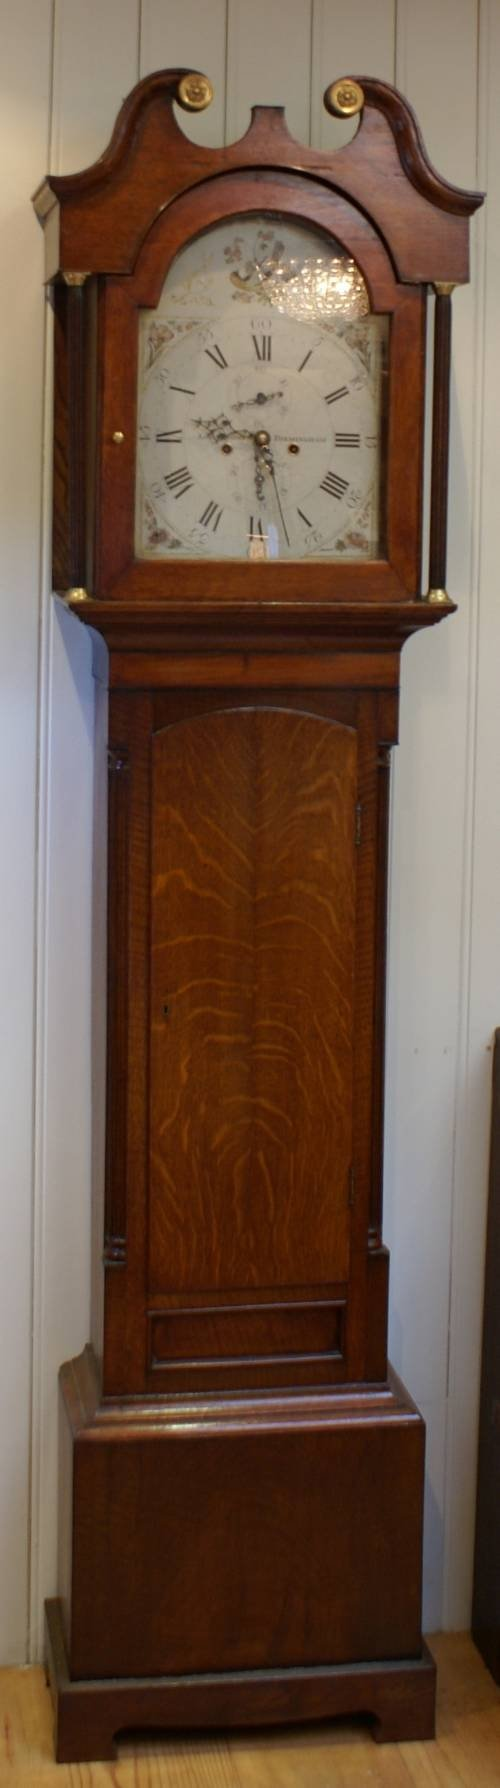 late 18th century solid oak cased longcase clock c 1800